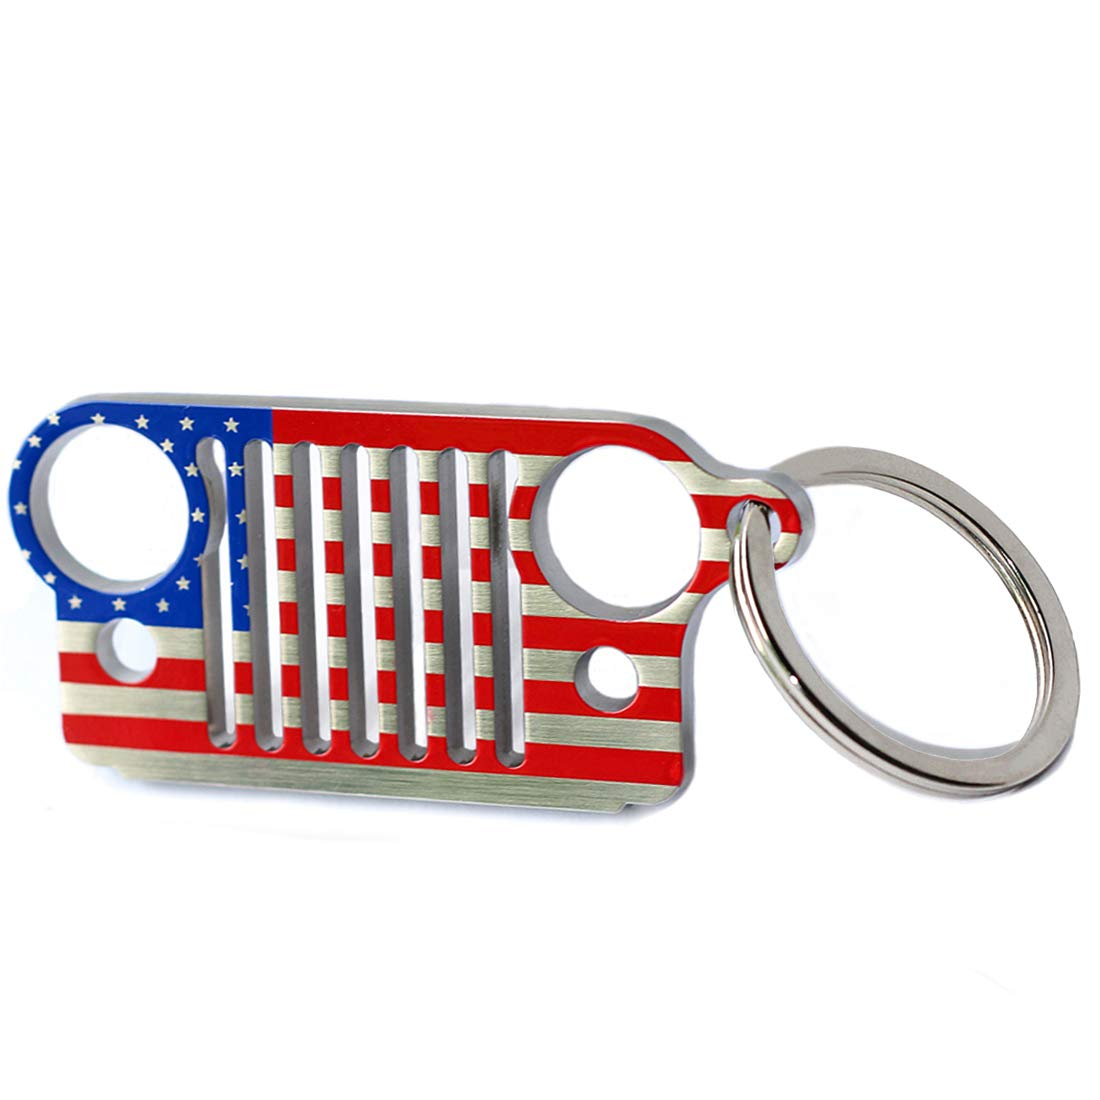 LROEZR 3D Font Grill Keychain Chain Key Ring for Jeep Driver Enthusiast Automotive Laser Cut 304 Stainless Steel Keyring National Flag